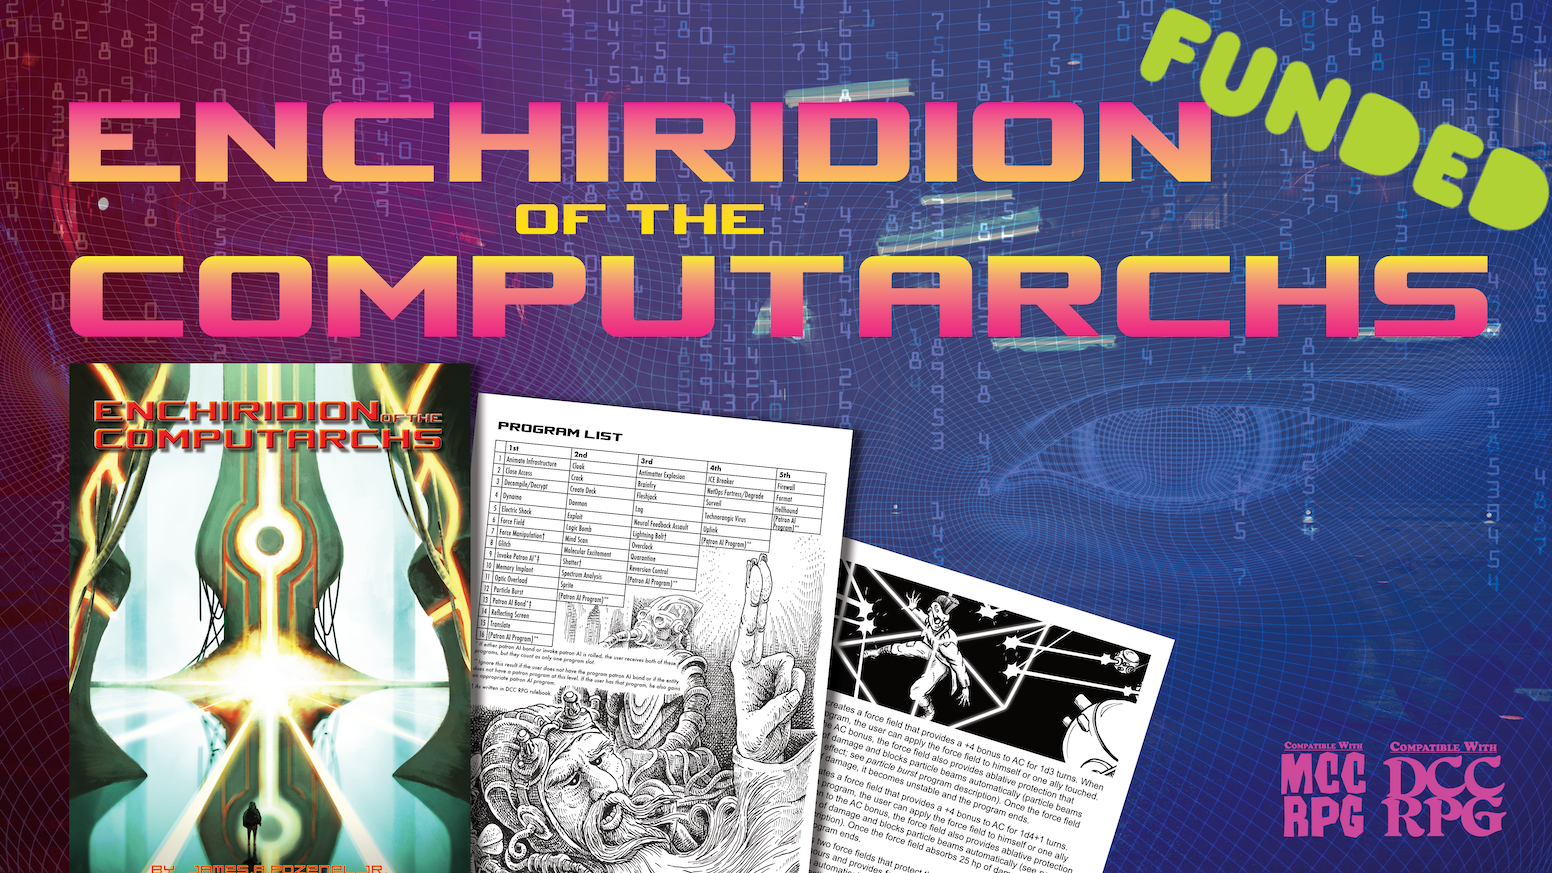 A supplement for high tech casting using the Dungeon Crawl Classics RPG and Mutant Crawl Classics RPG rules.